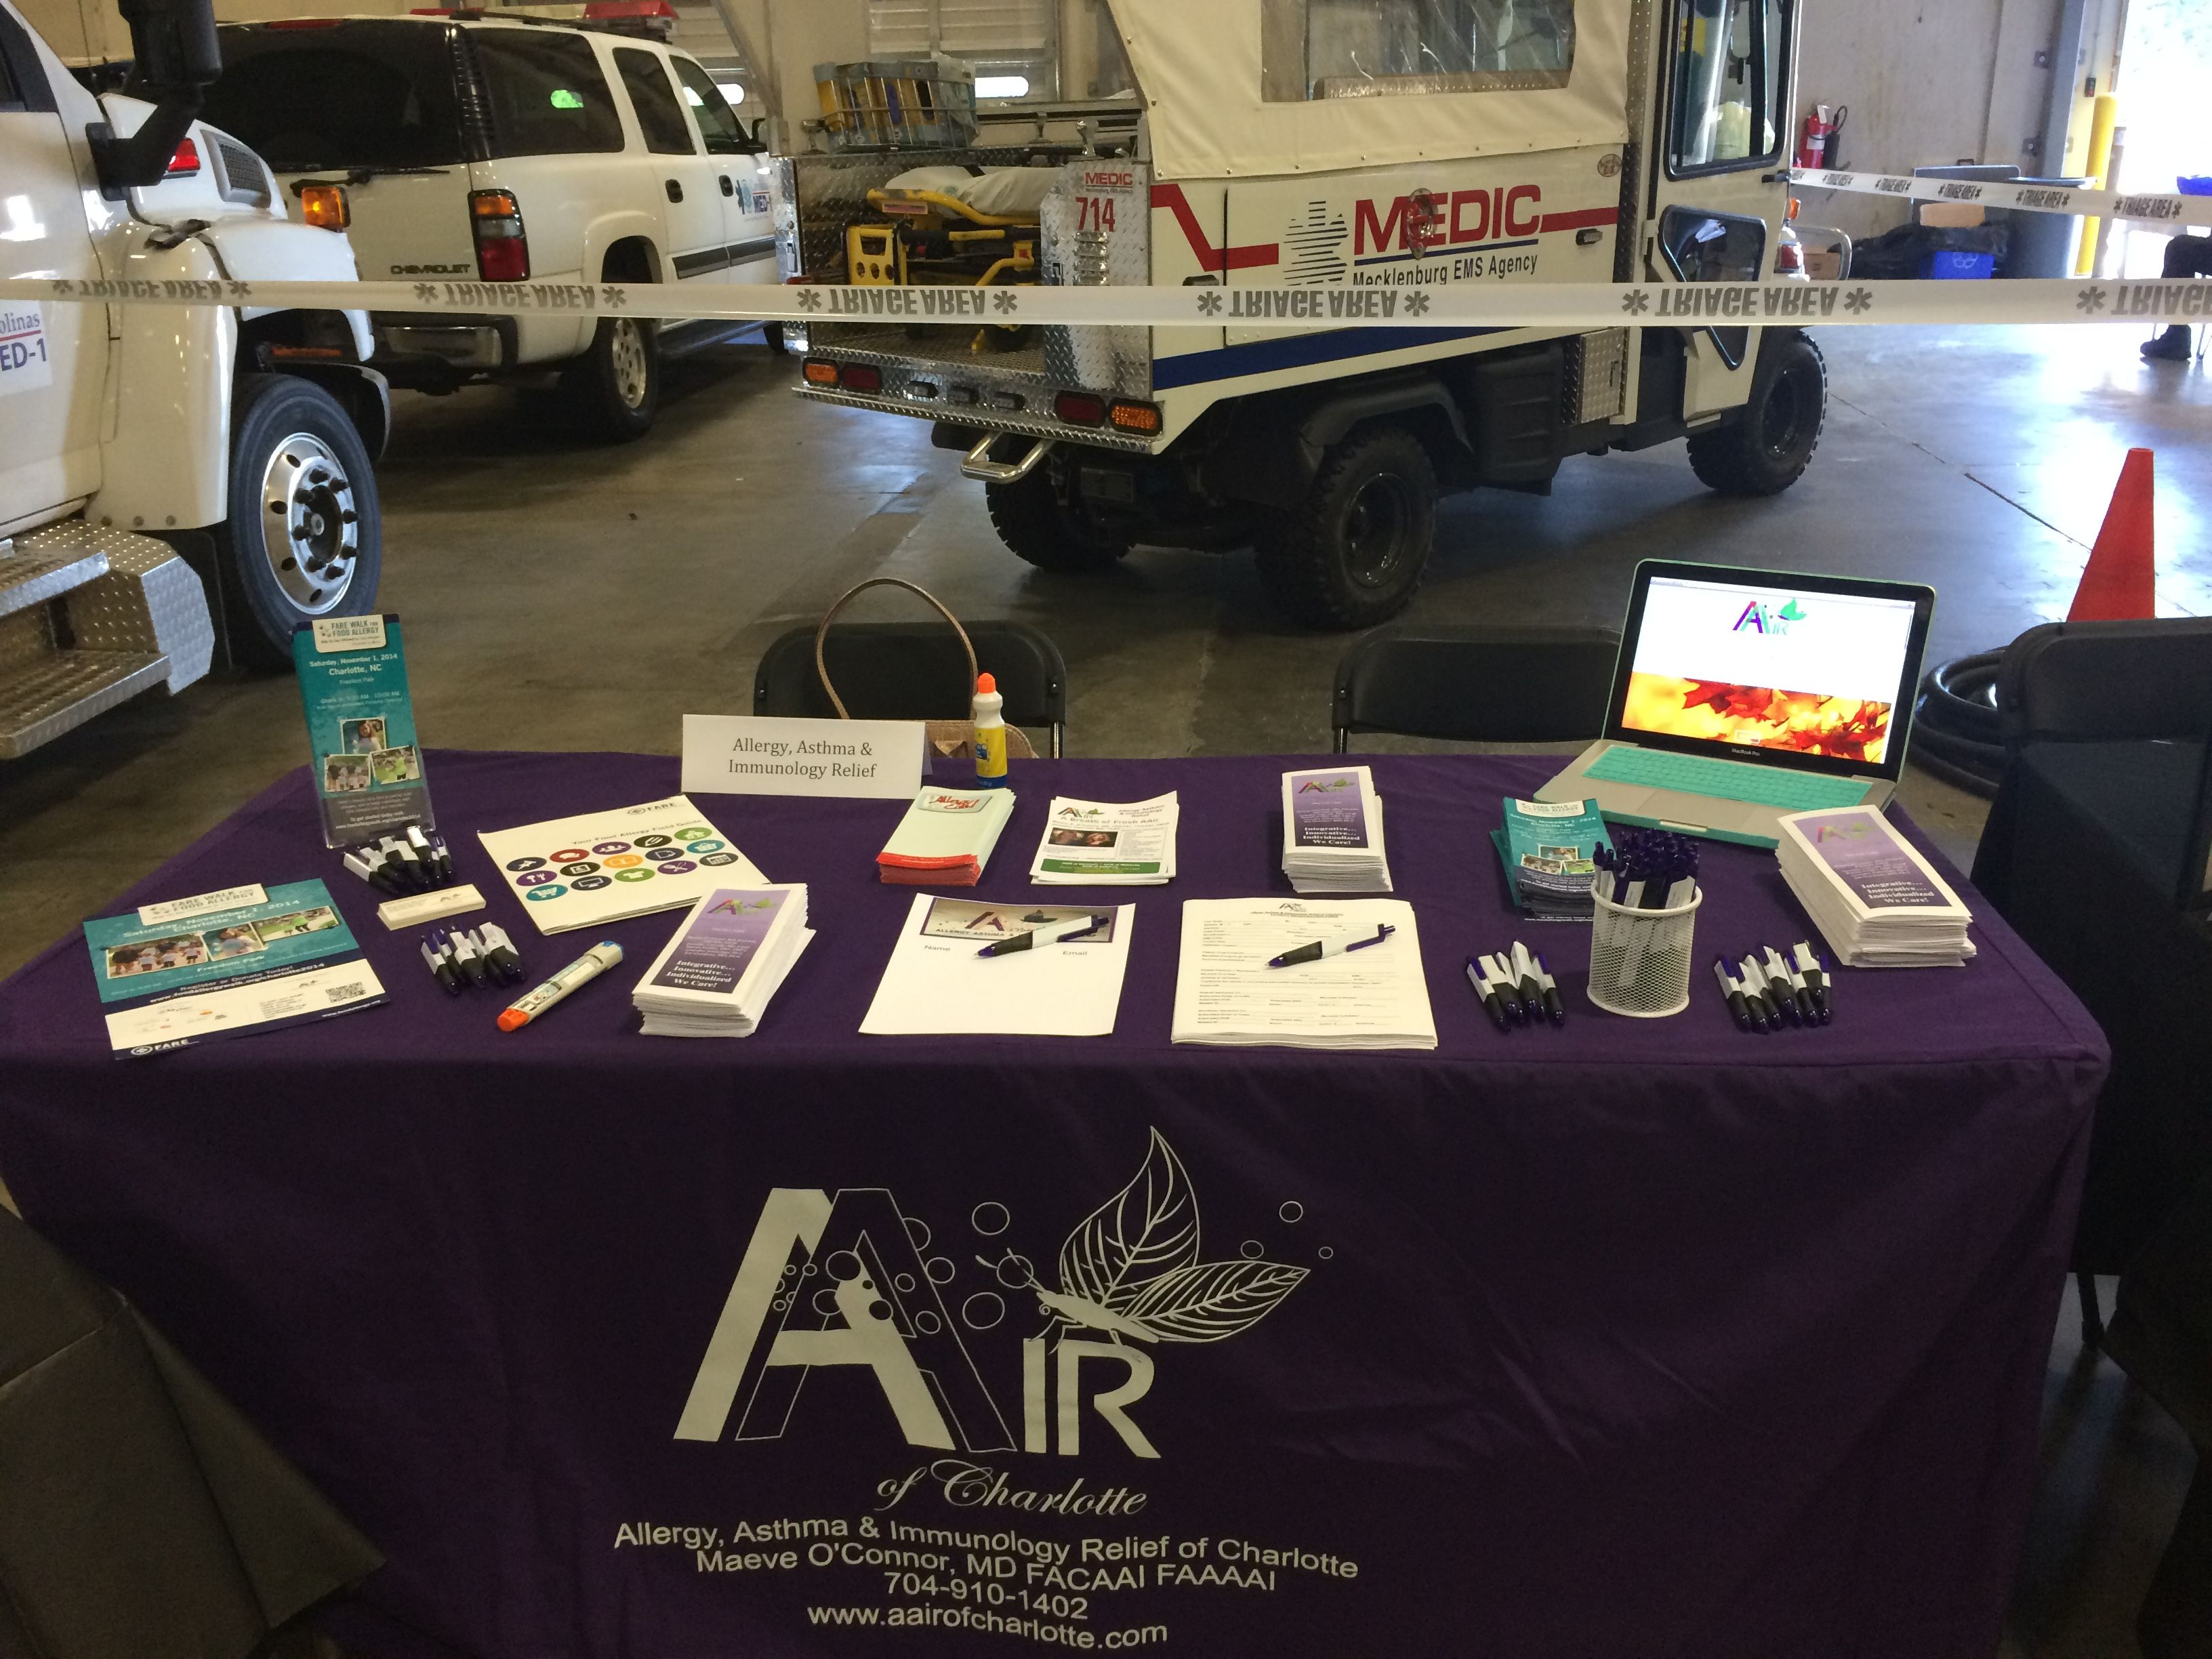 Aair Table At The Medic Health Fair October 2017